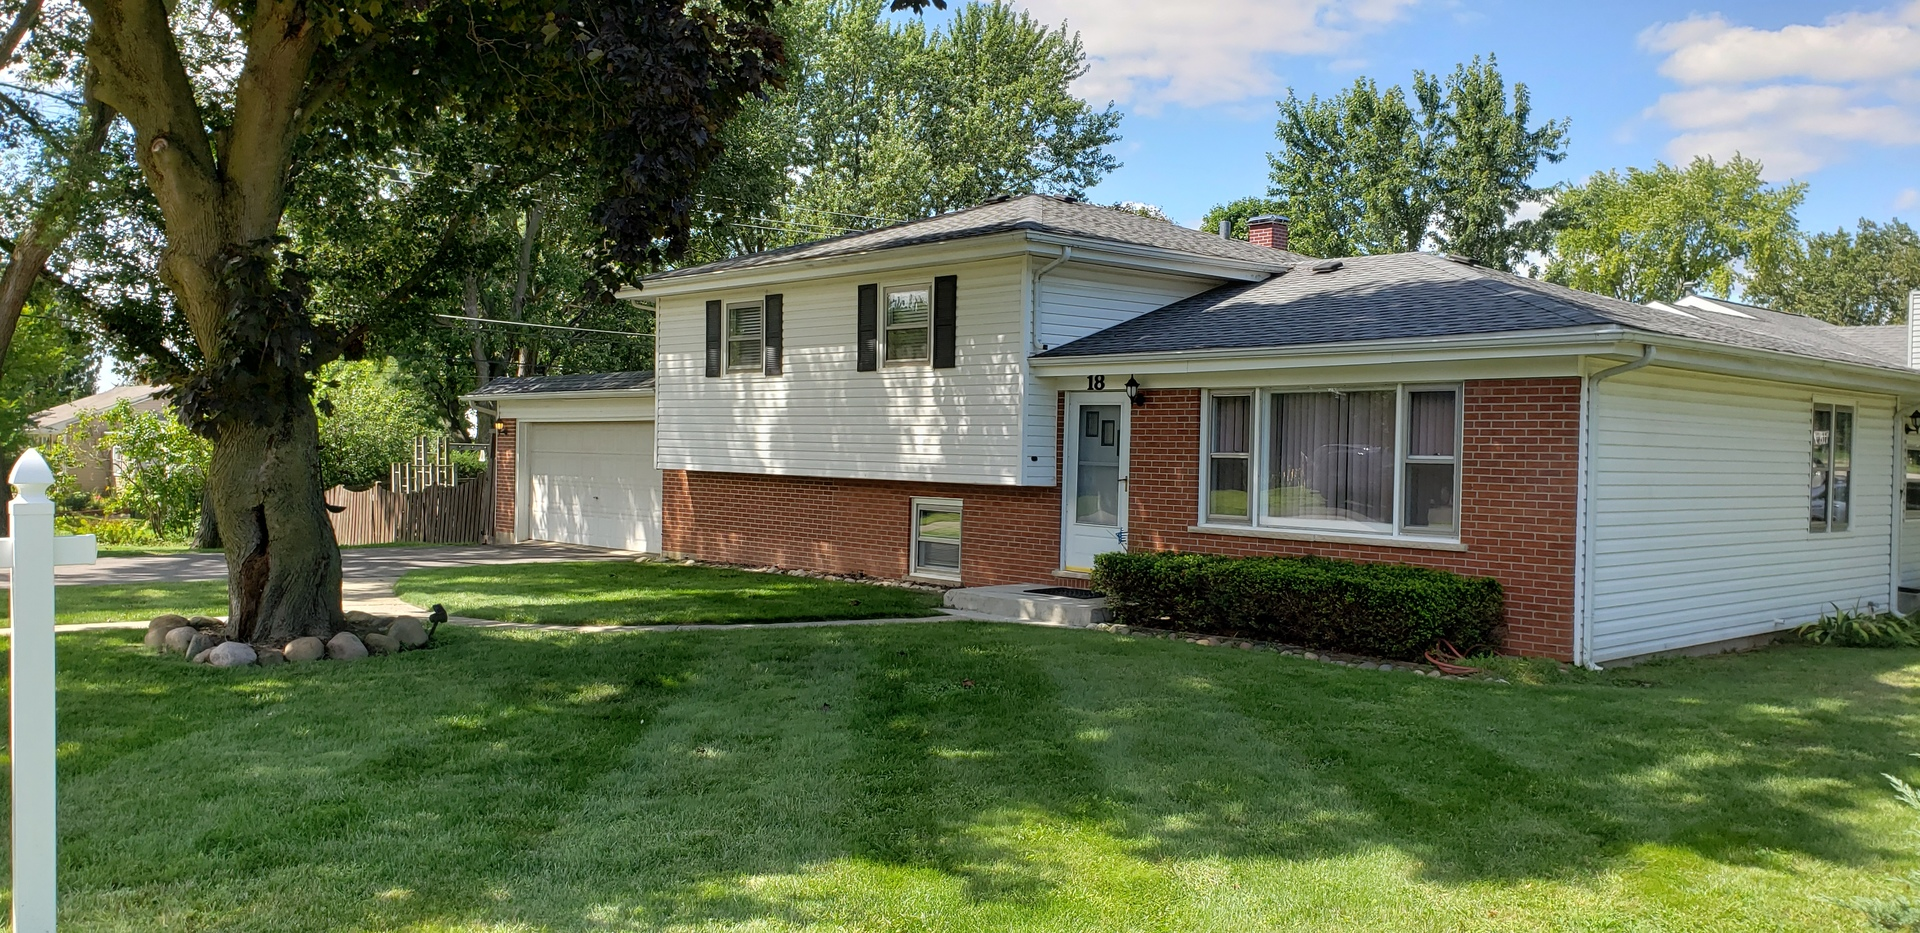 Photo for 18 Lincoln Street, Lake In The Hills, IL 60156 (MLS # 10638042)